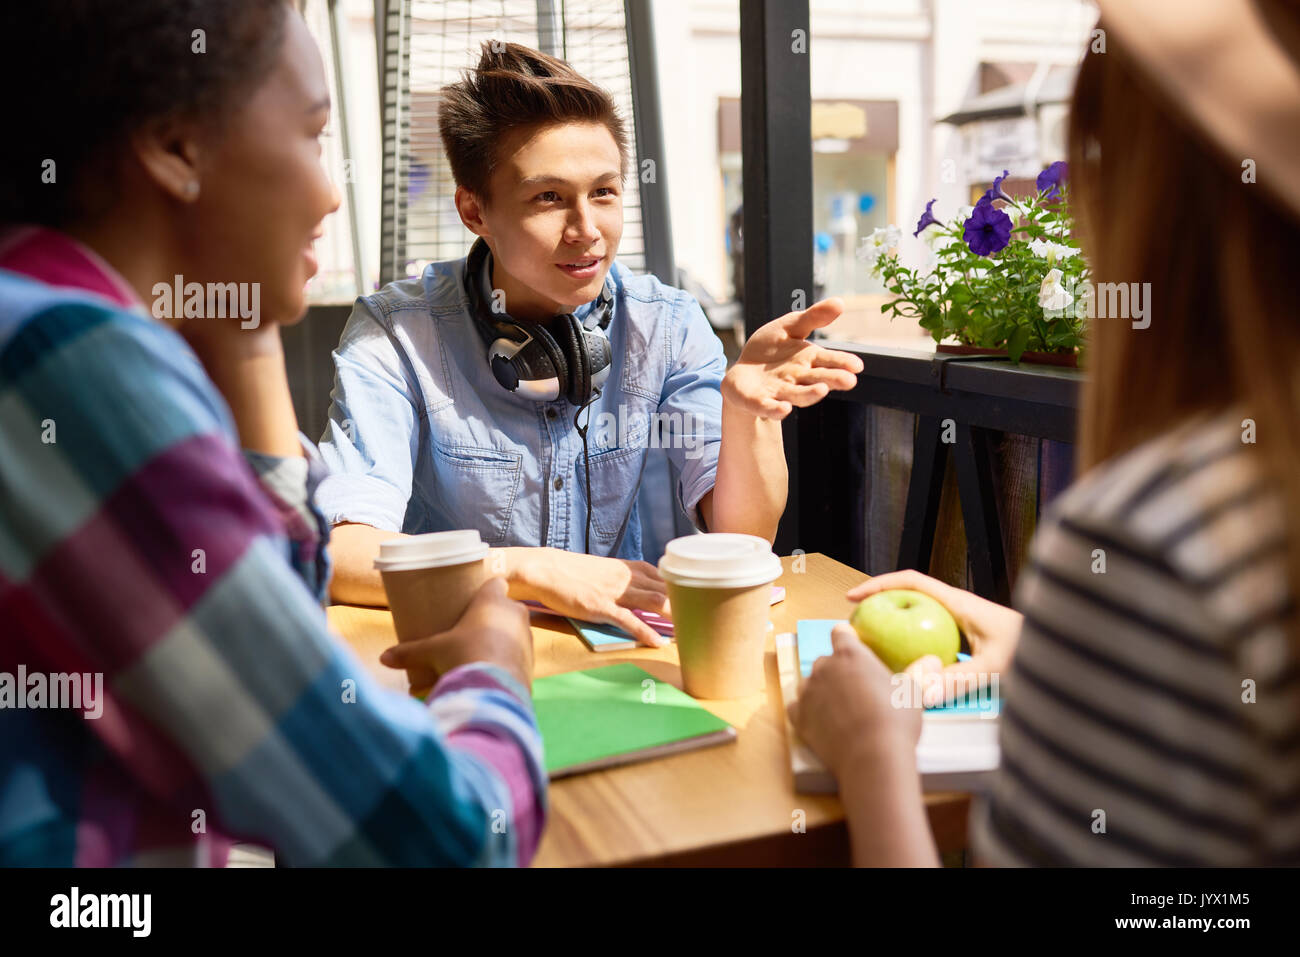 Asian Student Talking to Friends in Cafe - Stock Image